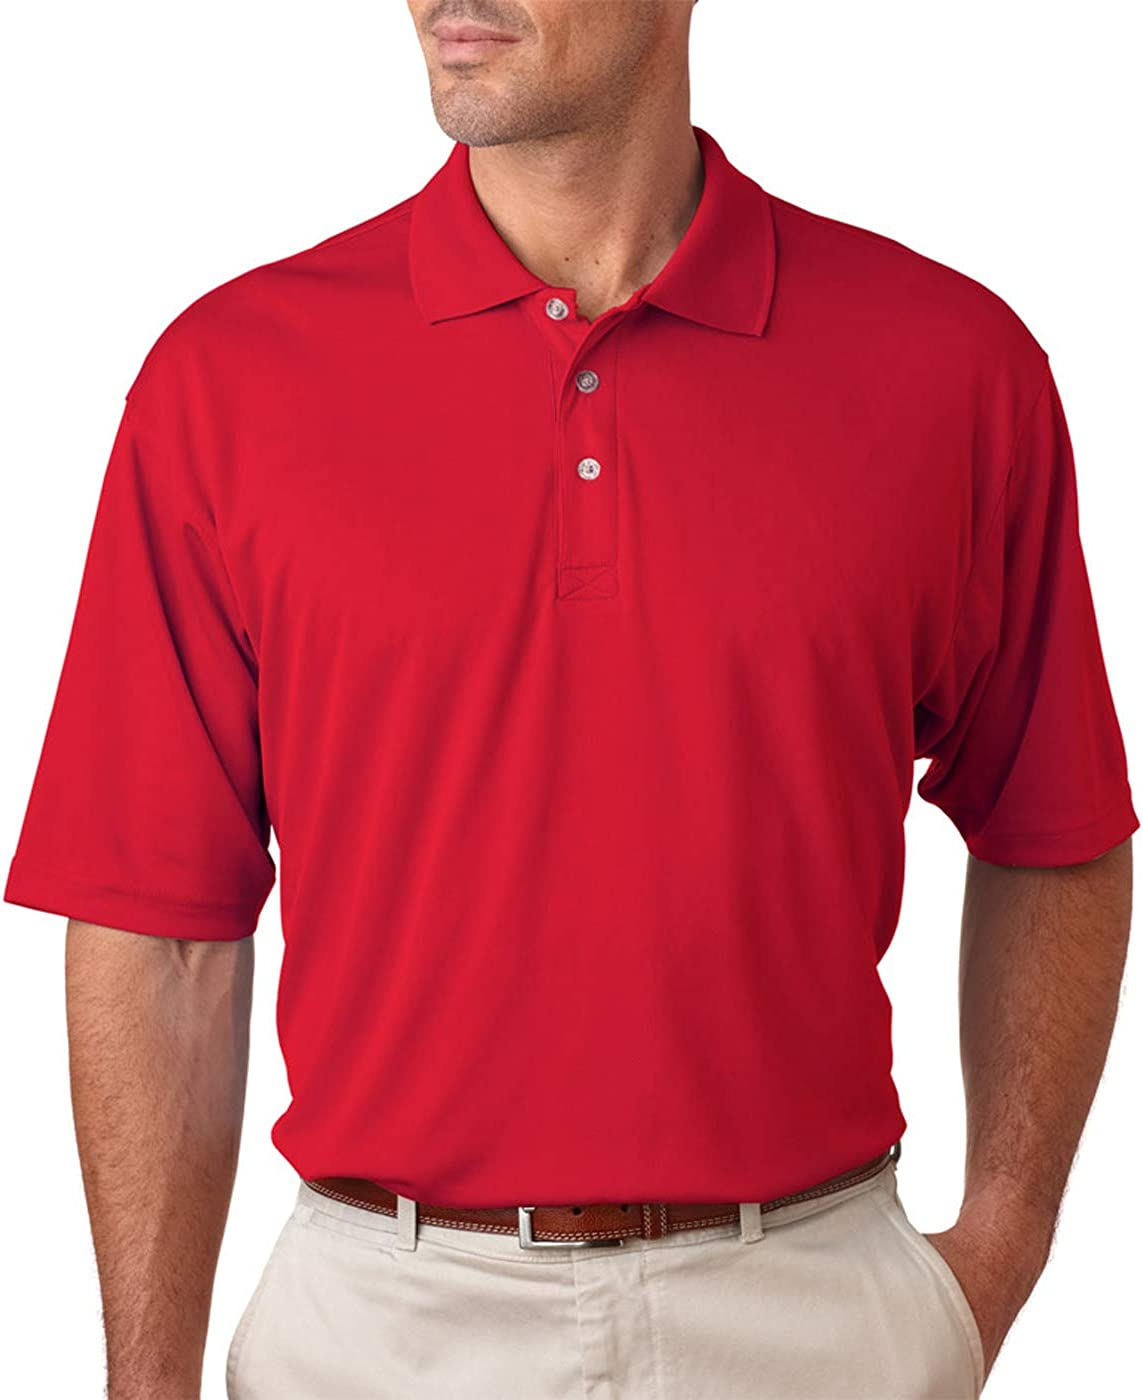 UltraClub Men's Tall Cool & Dry Sport Polo, Red, 2XLT